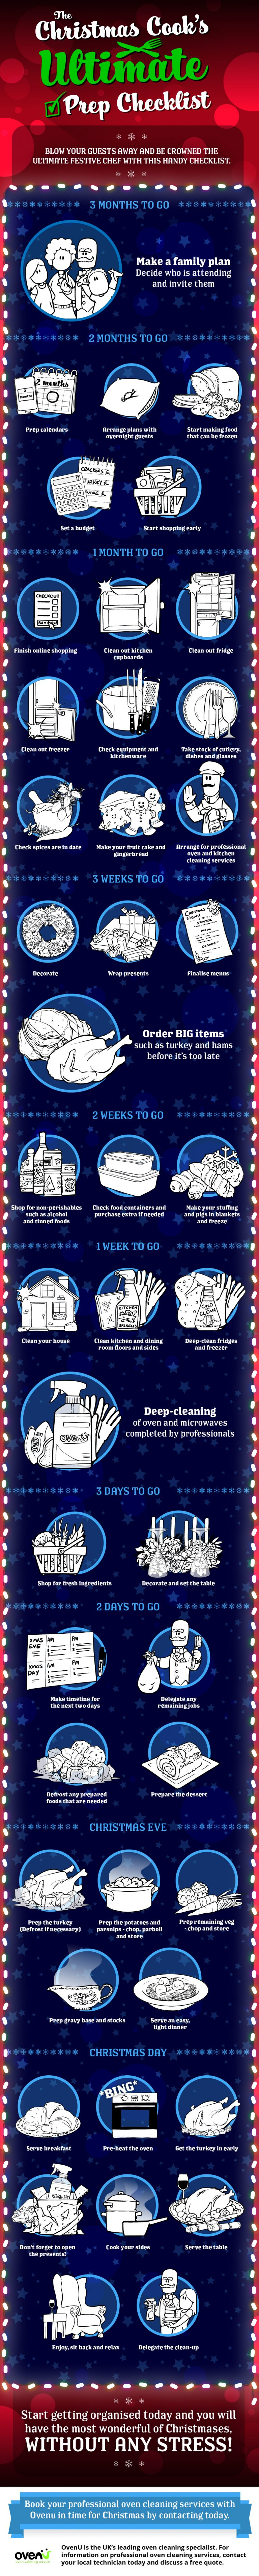 ovenu, Christmas, christmas dinner, preparations cooking, infographic